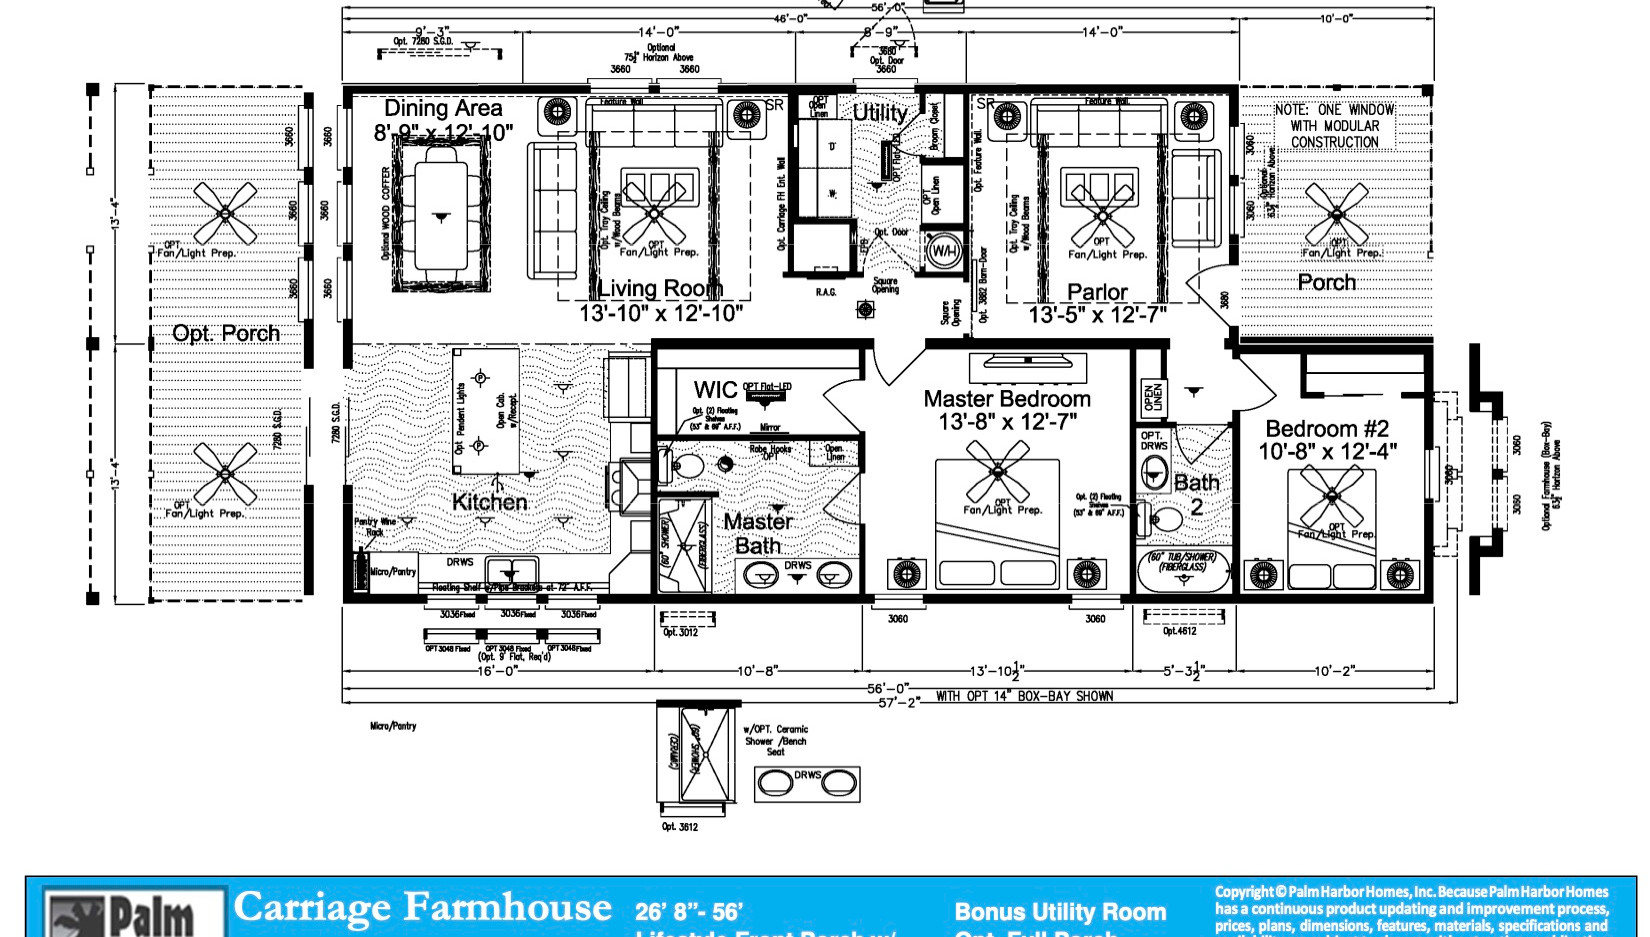 Carriage Farmhouse  Marketing Floorplan.